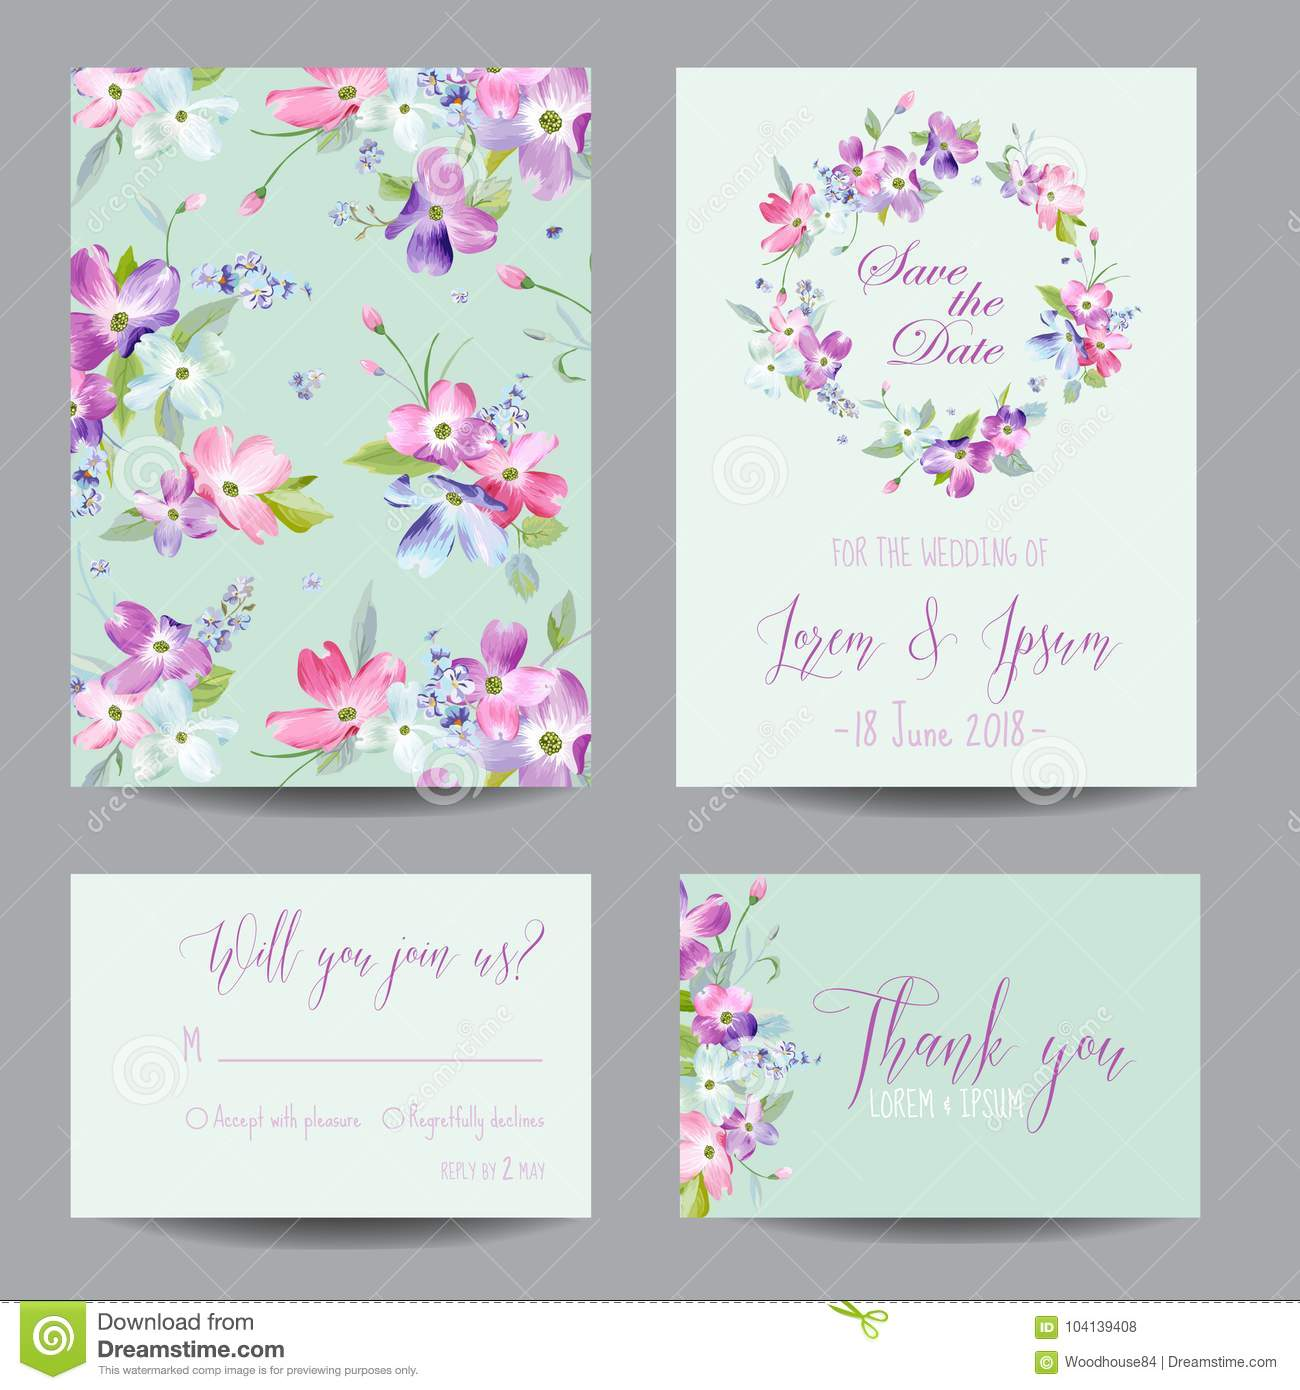 Save the Date Wedding Invitation Template with Spring Dogwood Flowers. Romantic Floral Greeting Card Set for Celebration